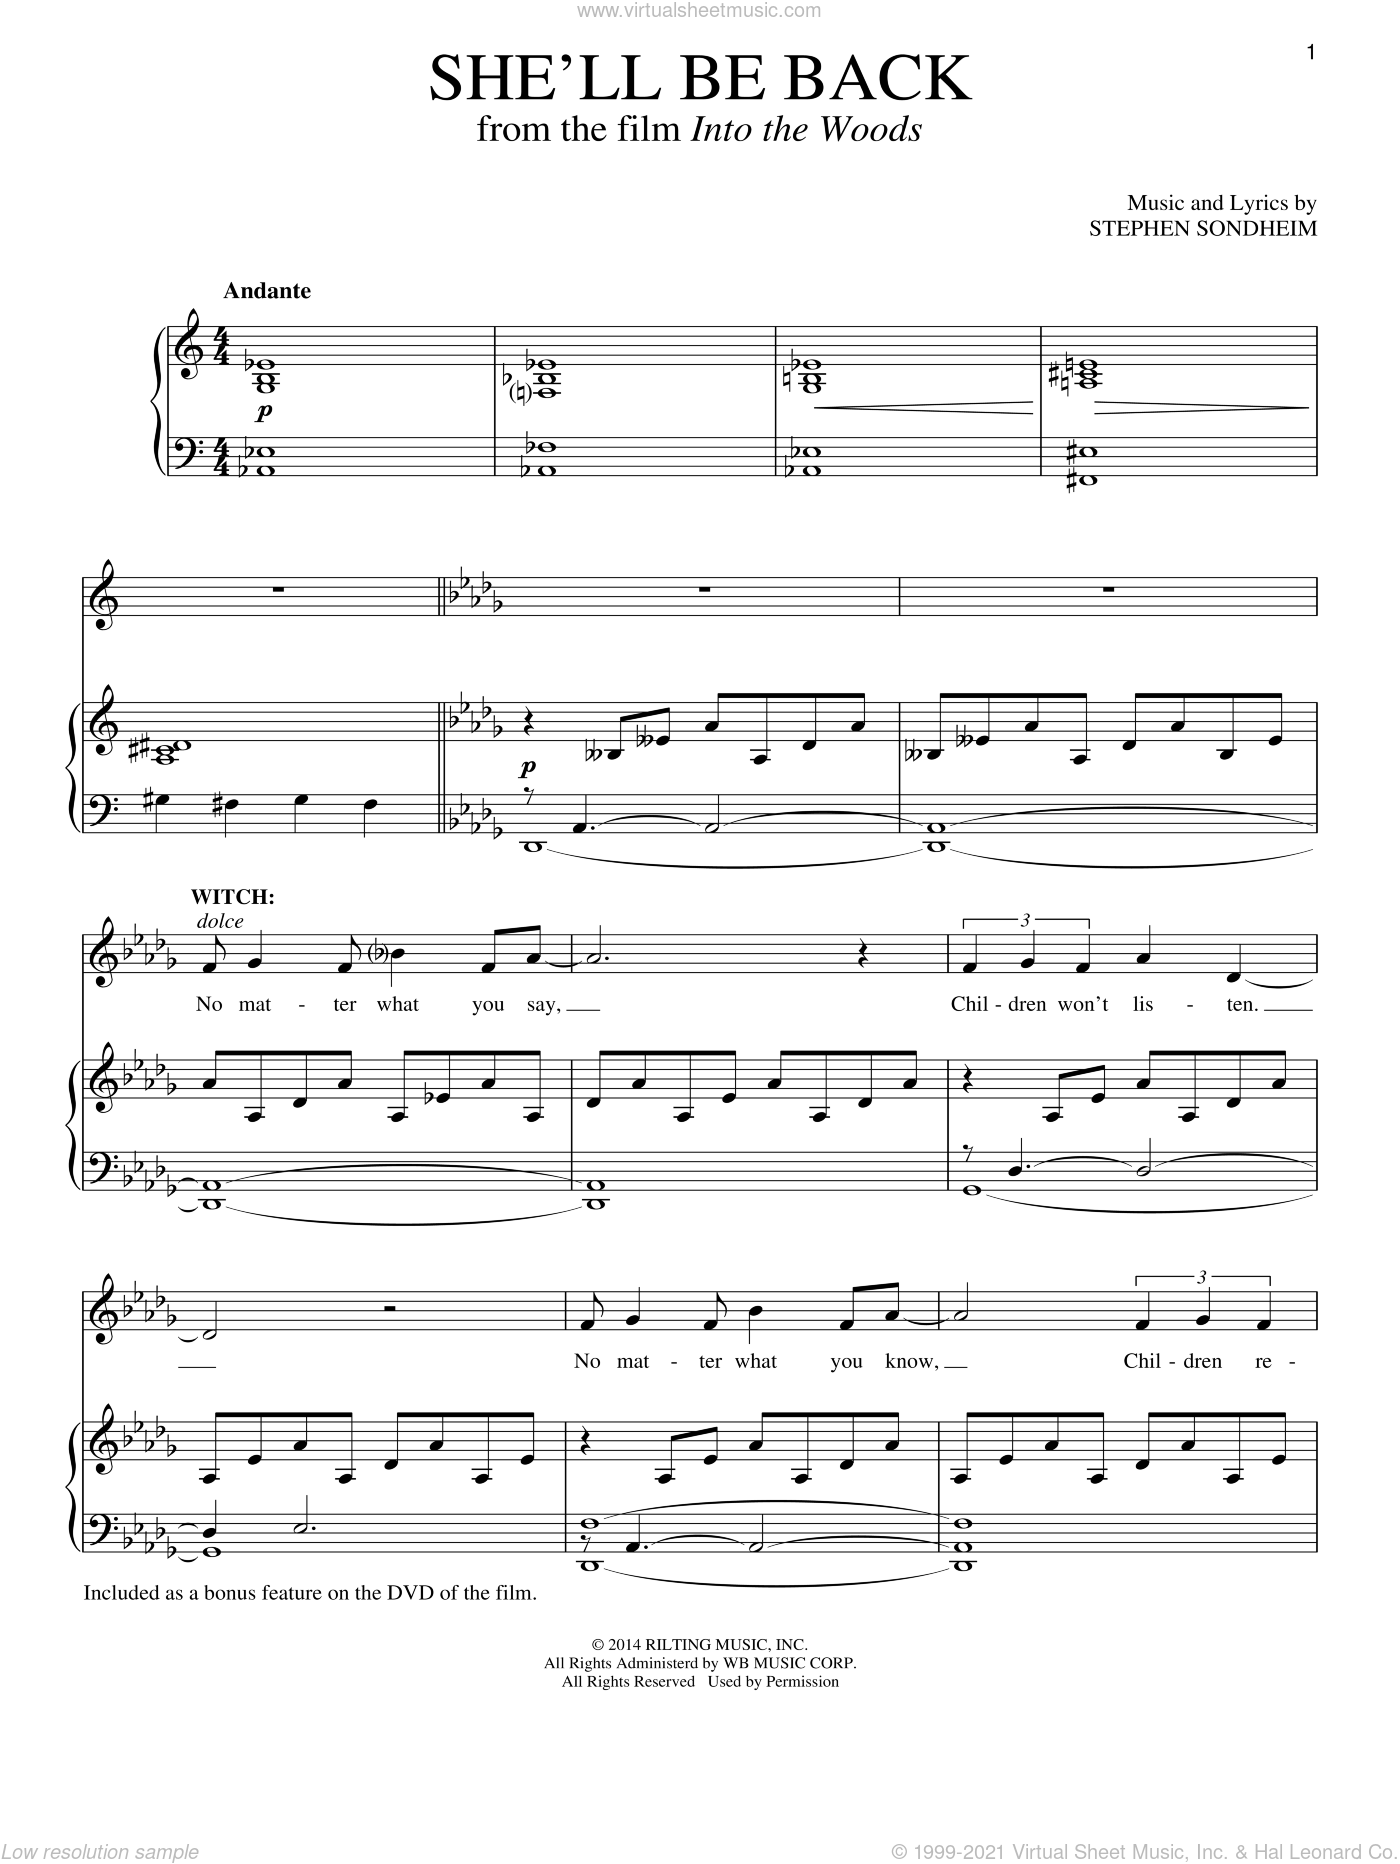 She'll Be Back sheet music for voice and piano by Stephen Sondheim, intermediate voice. Score Image Preview.